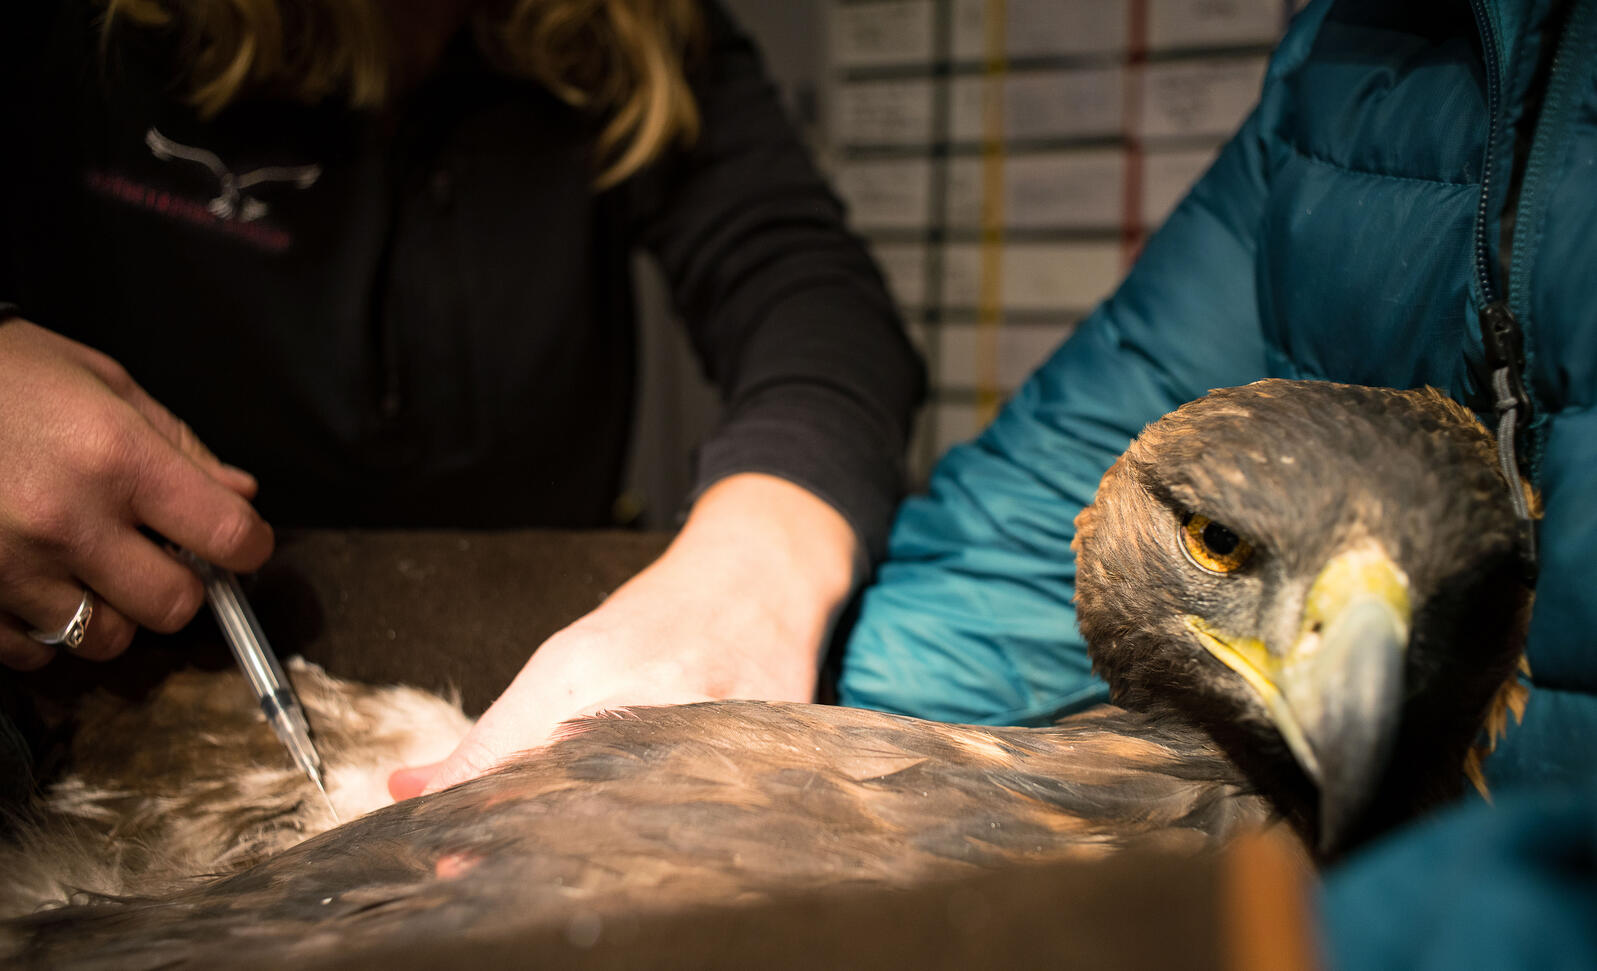 After being found unable to fly, this Golden Eagle was transported across Wyoming to get the help it needed thanks to a volunteer network of raptor runners. Moosejaw Bravo Photography